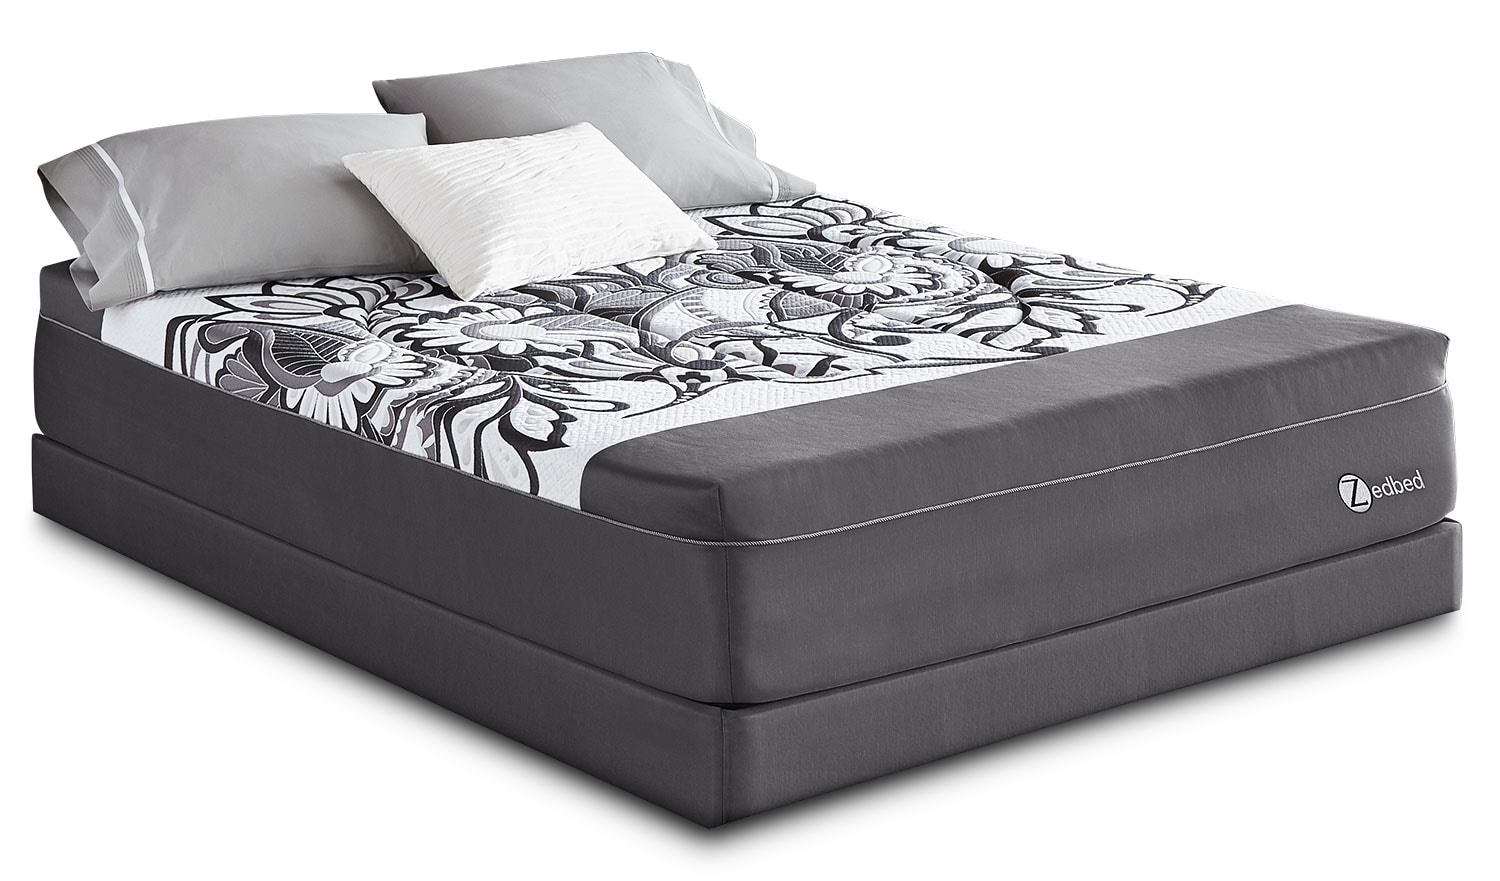 Zedbed Vertuo Deluxe Tight-Top Full Mattress Set